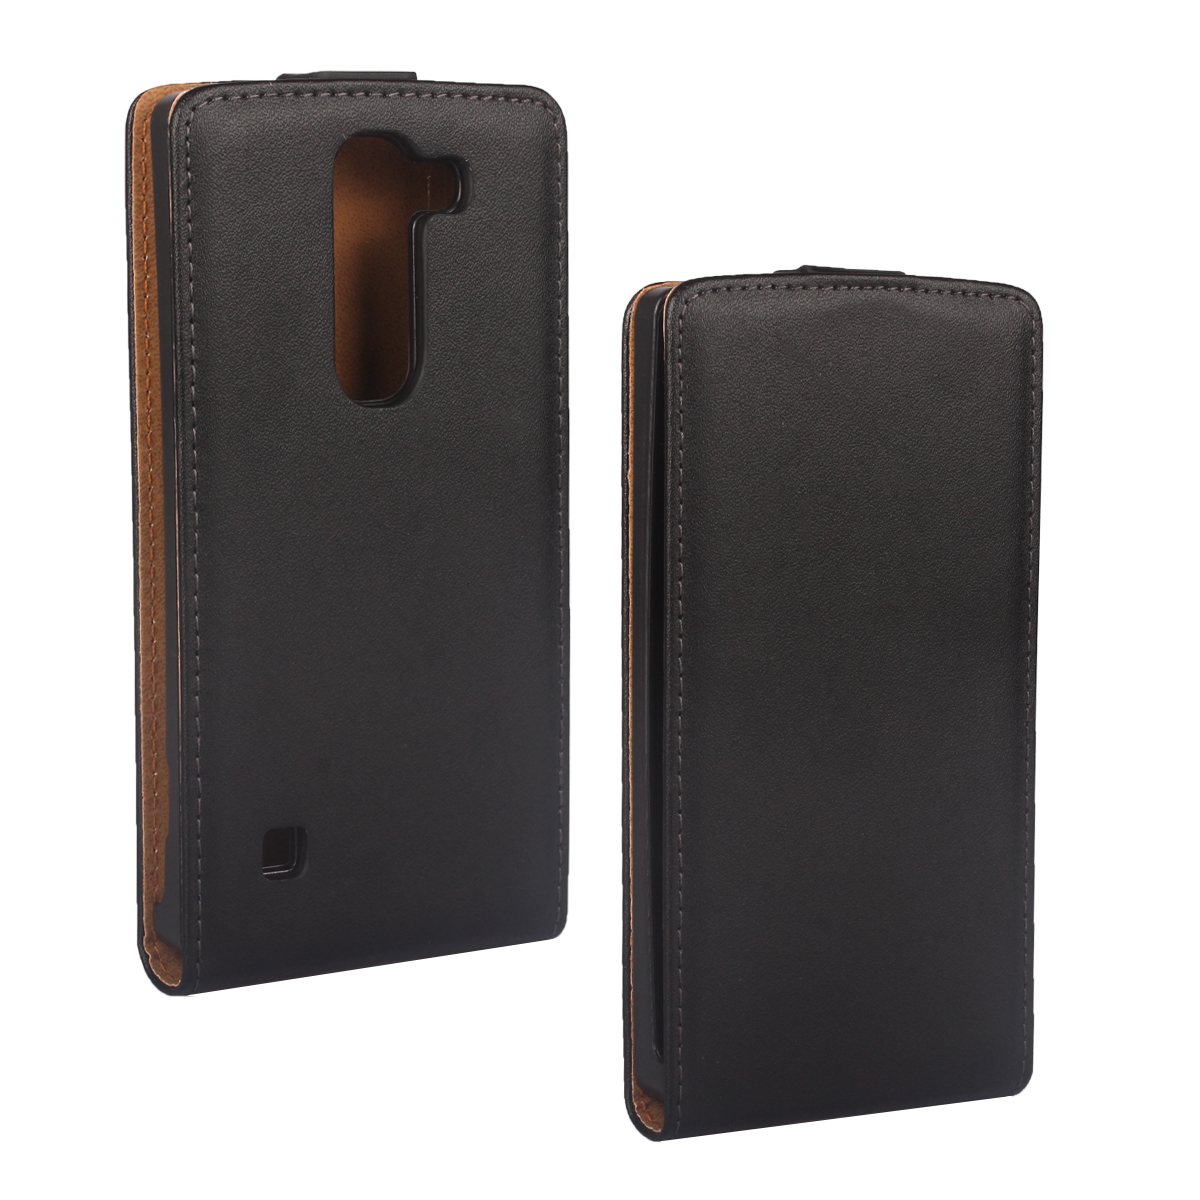 Vertical Flip <font><b>Case</b></font> For <font><b>LG</b></font> Spirit <font><b>LG</b></font> Leon 4G LTE <font><b>LG</b></font> Magna <font><b>G4C</b></font> Back Cover Leather Coque For <font><b>LG</b></font> Spirit Phone <font><b>Cases</b></font> Bag Accessory image